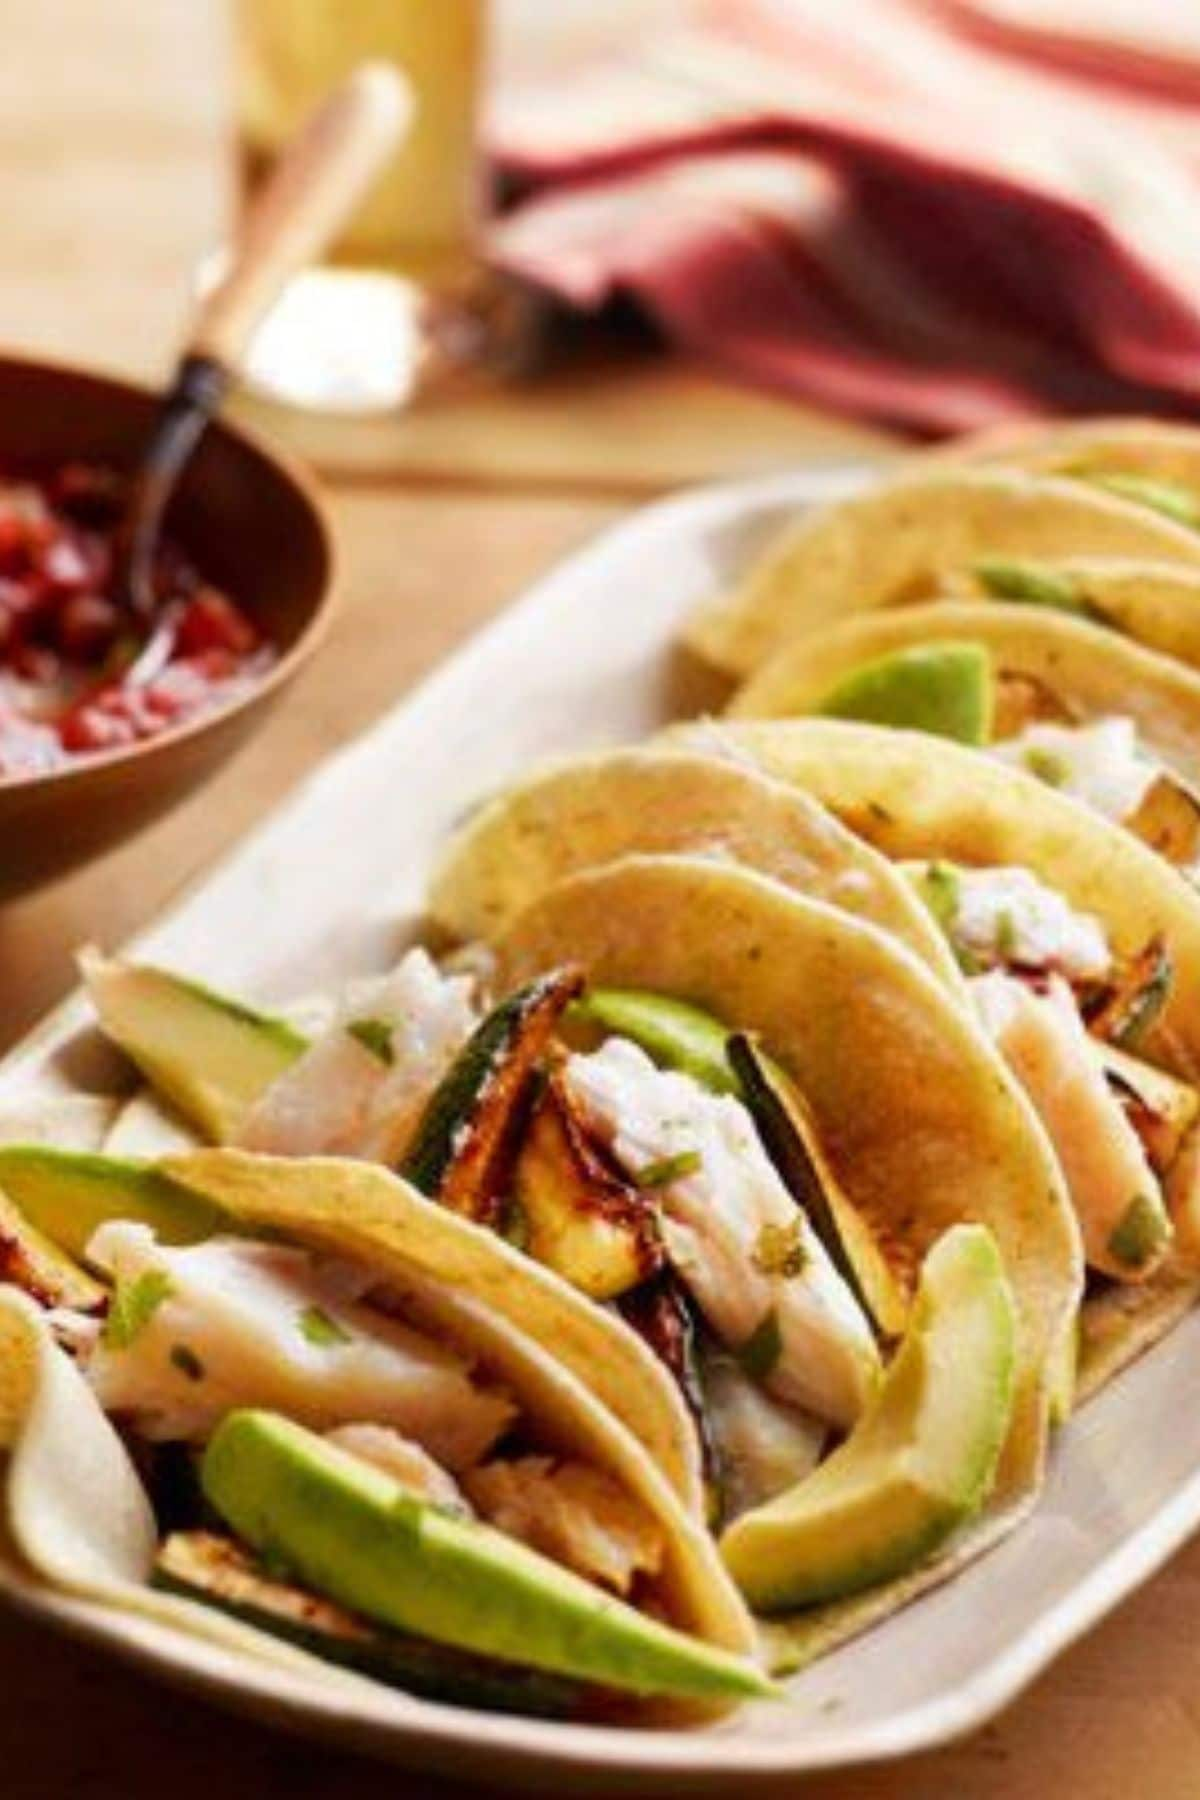 Fish tacos with avocado on white platter